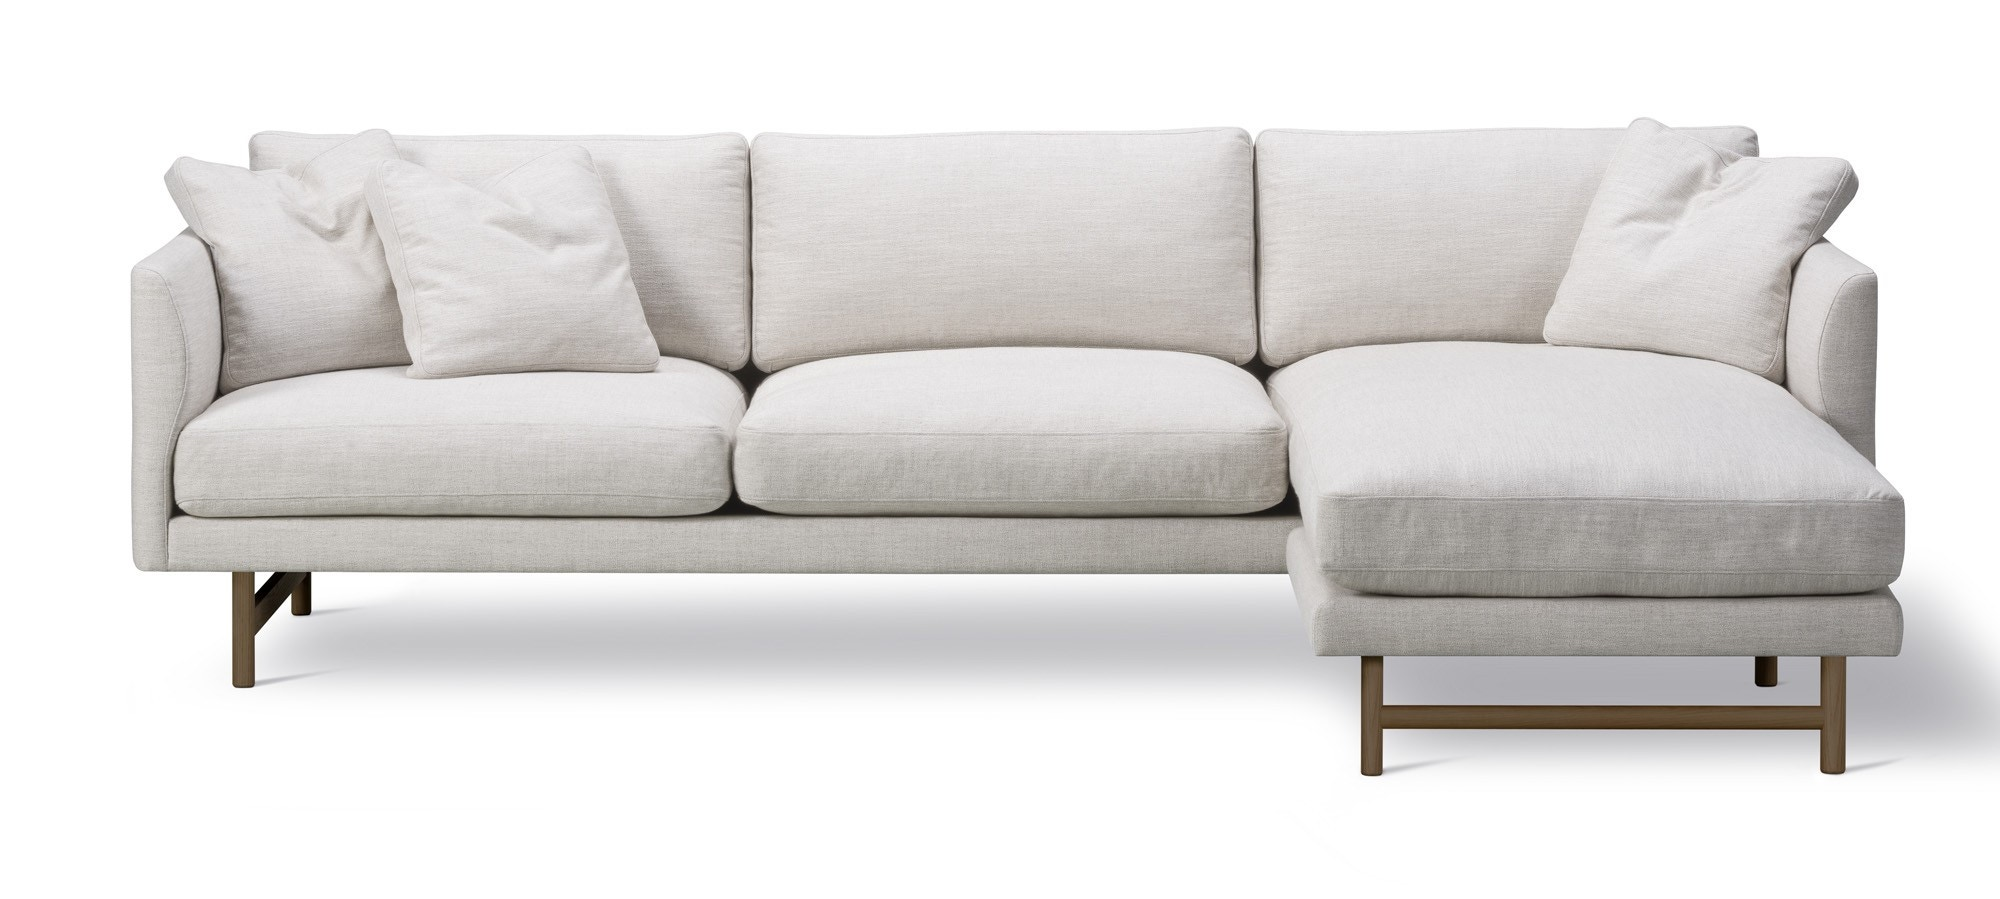 Fredericia Calmo 80 Wood Base 3 Seater Sofa with Chaise